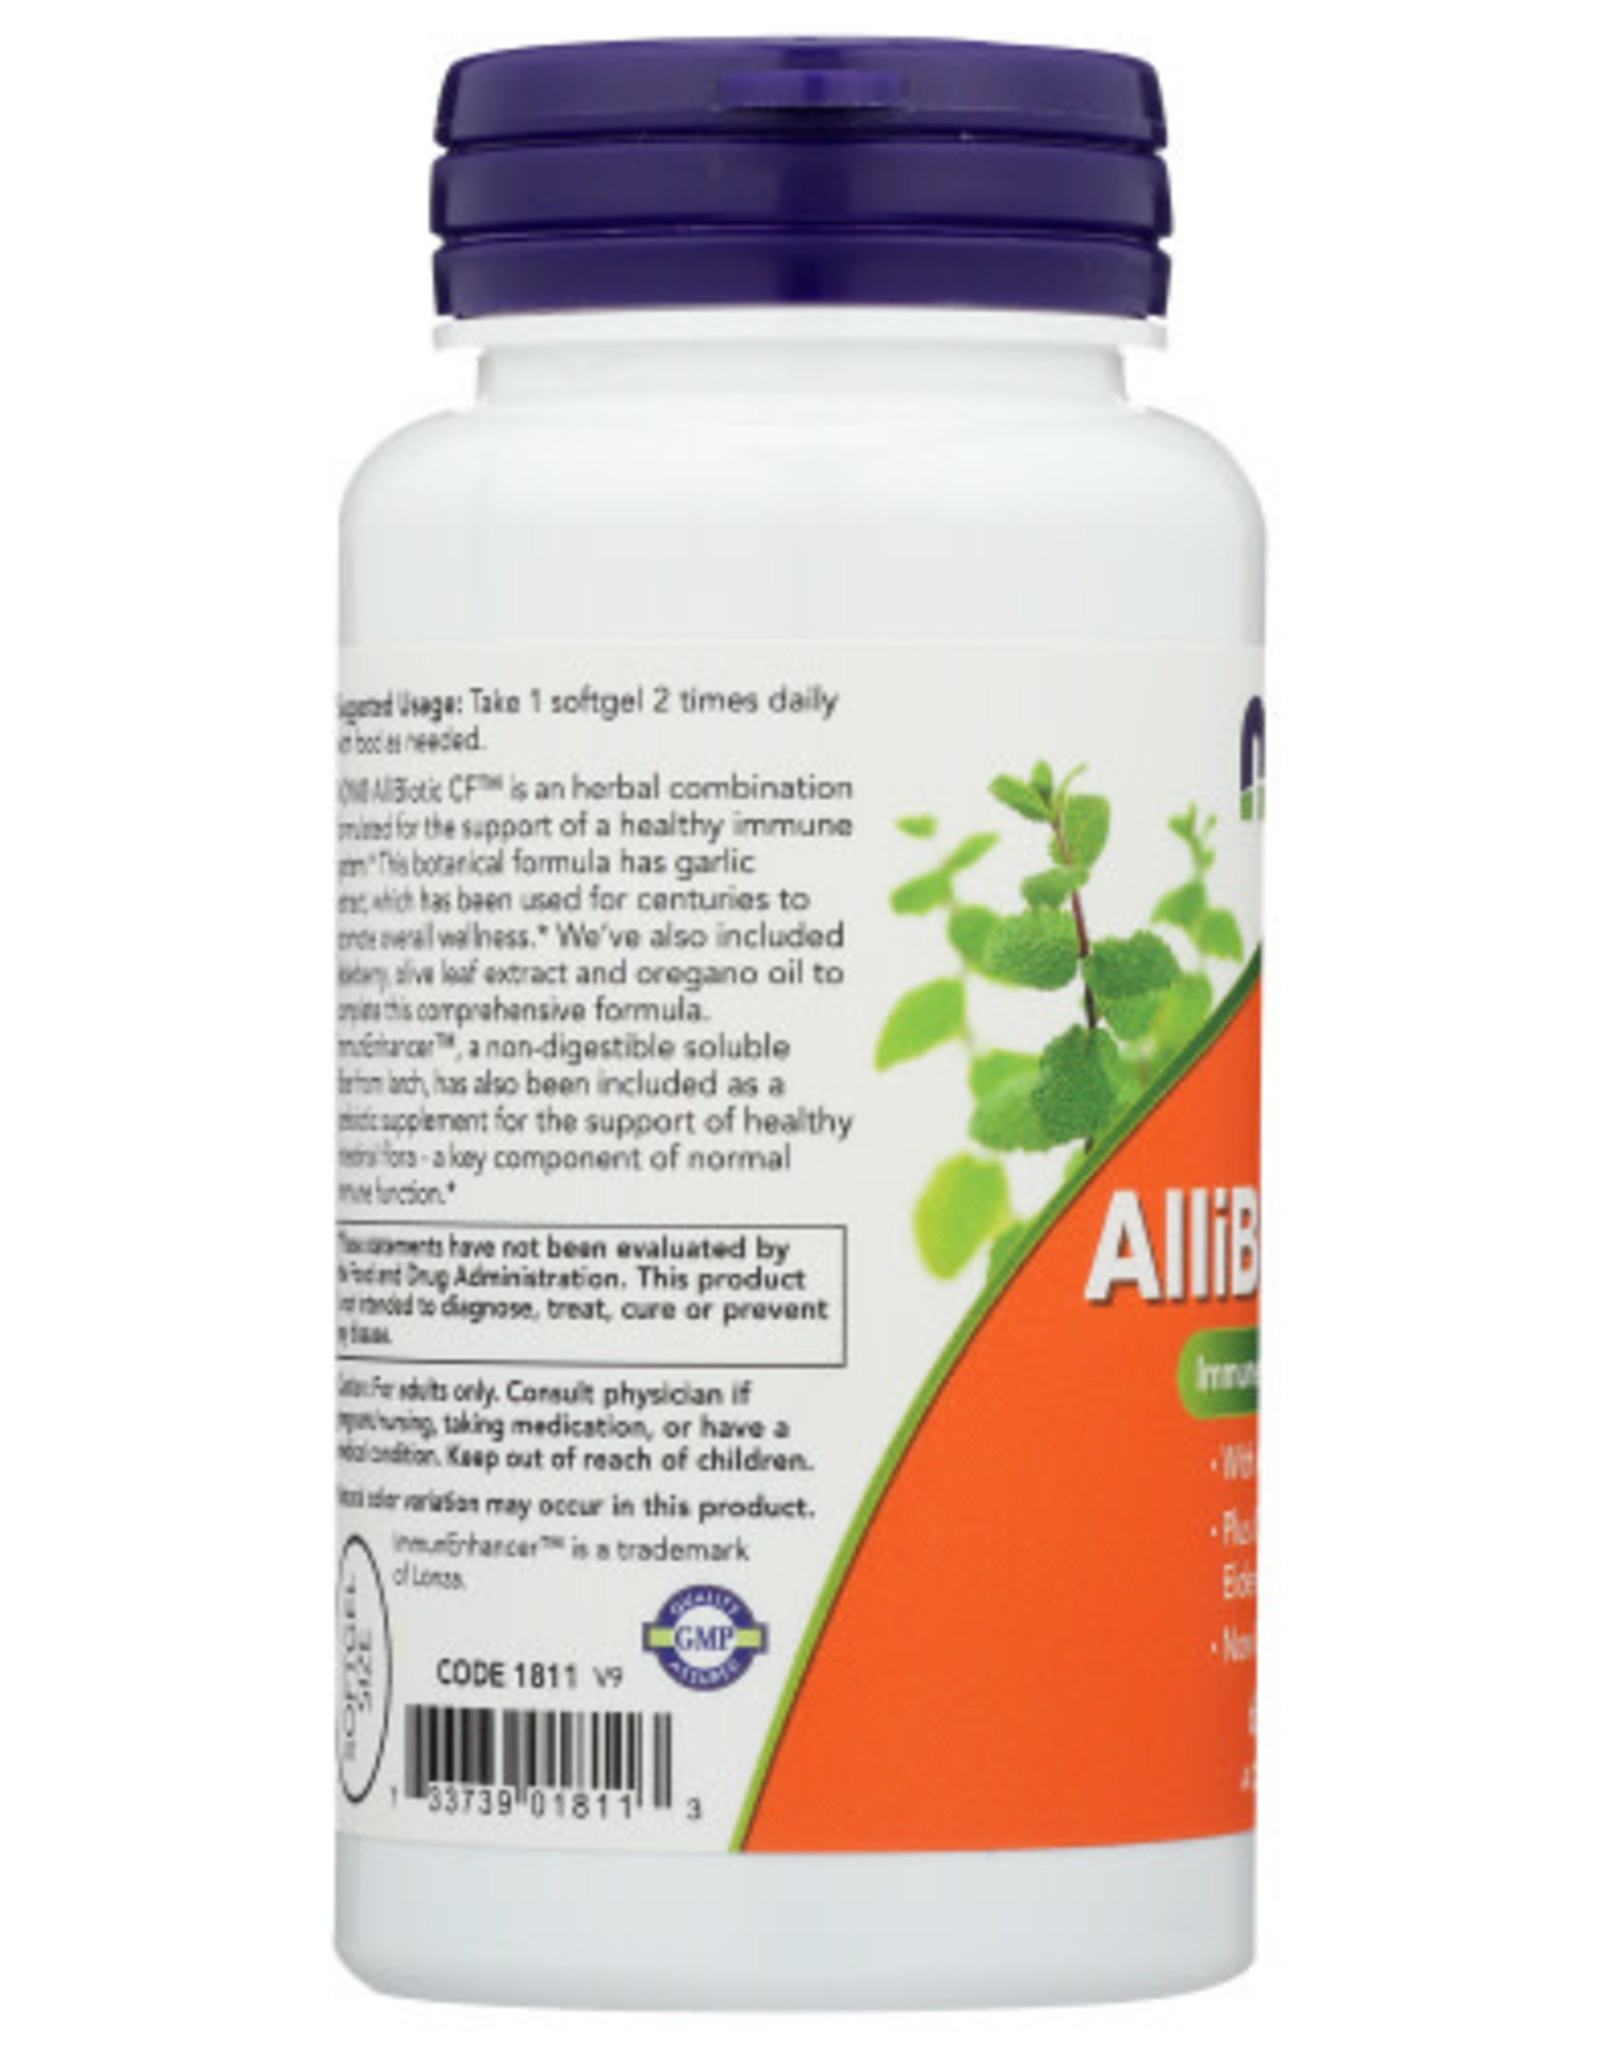 NOW FOODS NOW ALLIBIOTIC CF IMMUNE SYSTEM SUPPORT DIETARY SUPPLEMENT, 60 SOFTGELS